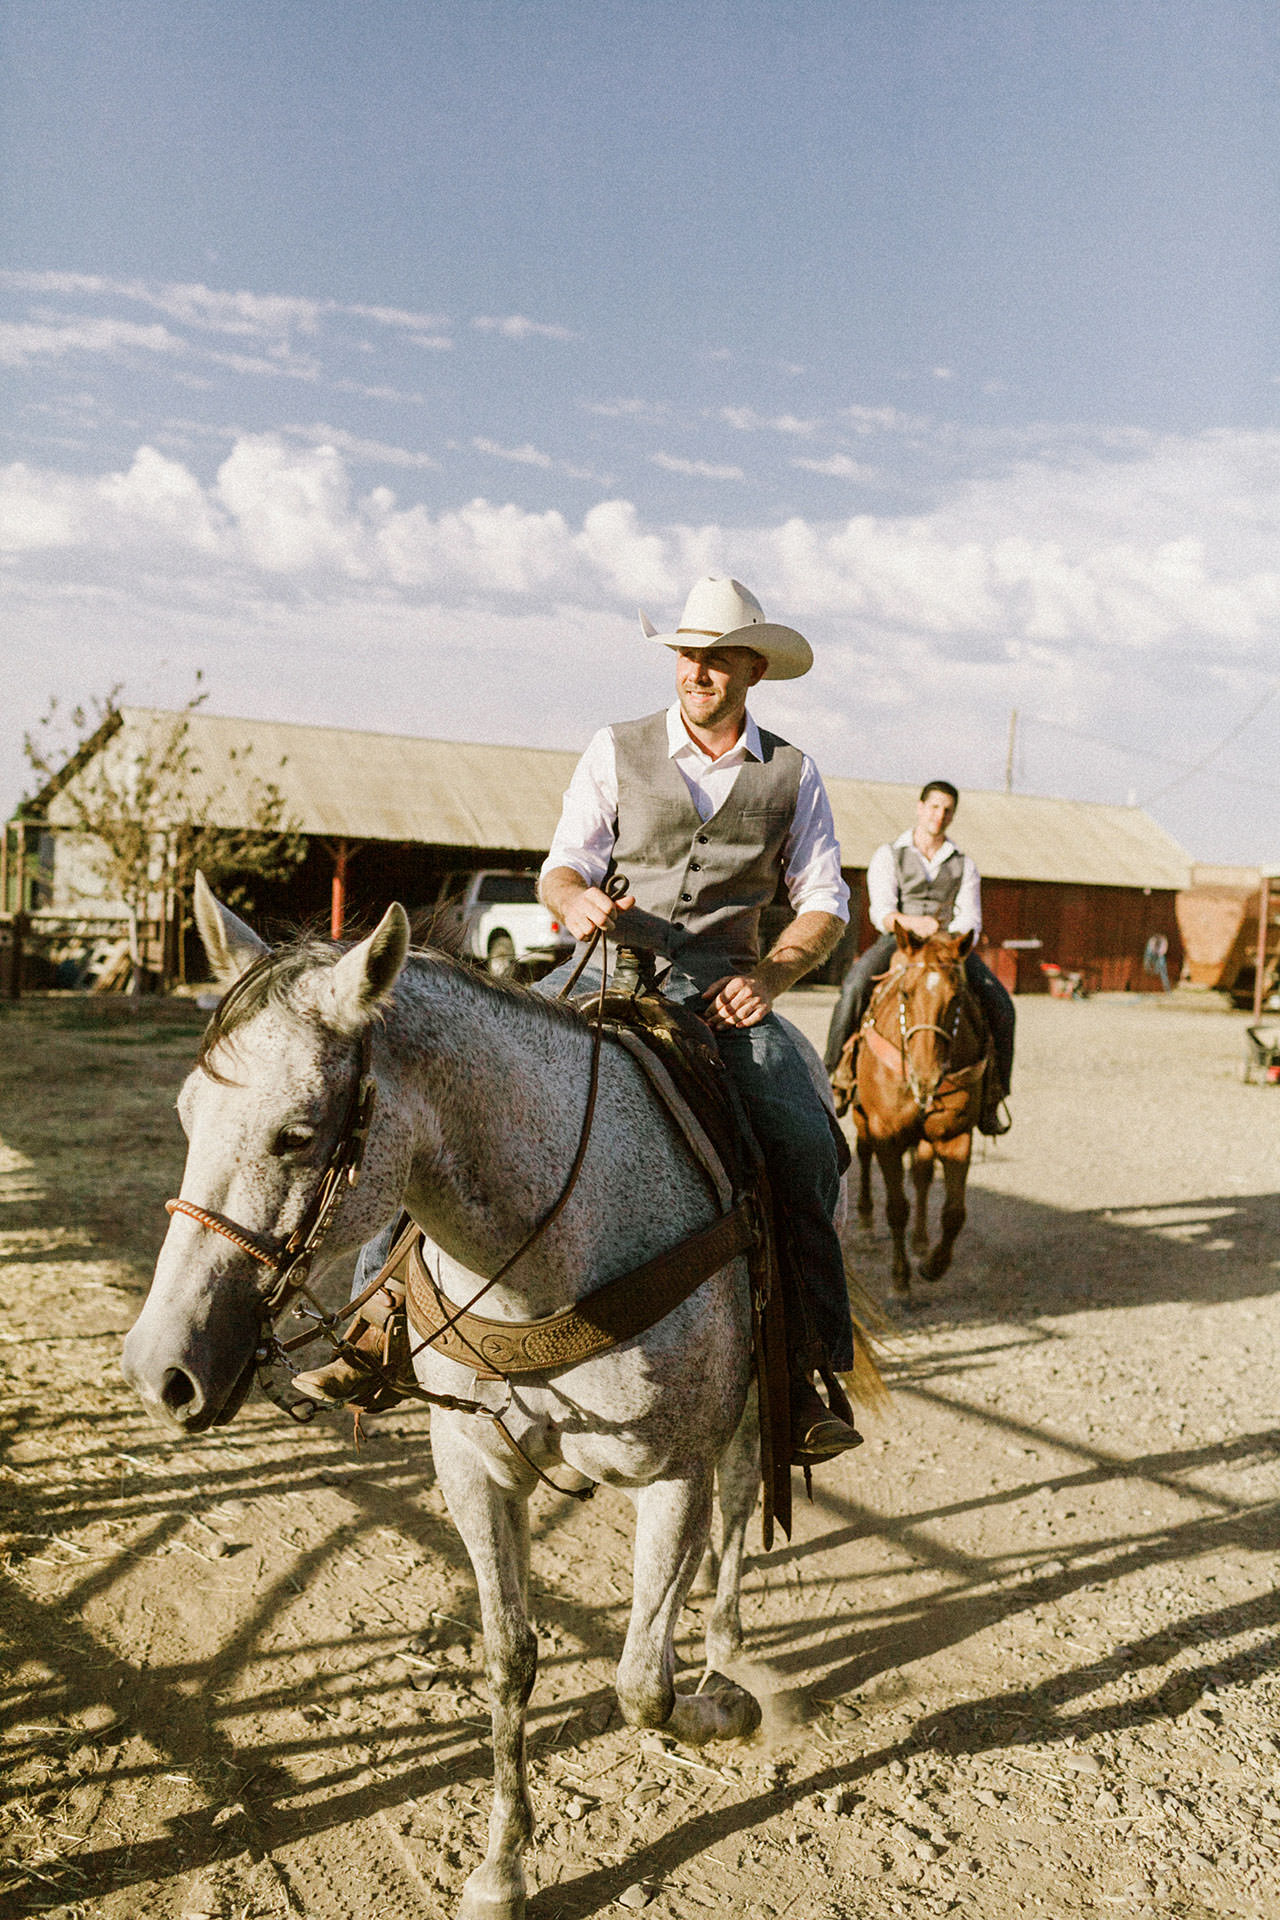 cowboy groom rides a horse into his wedding ceremony in california